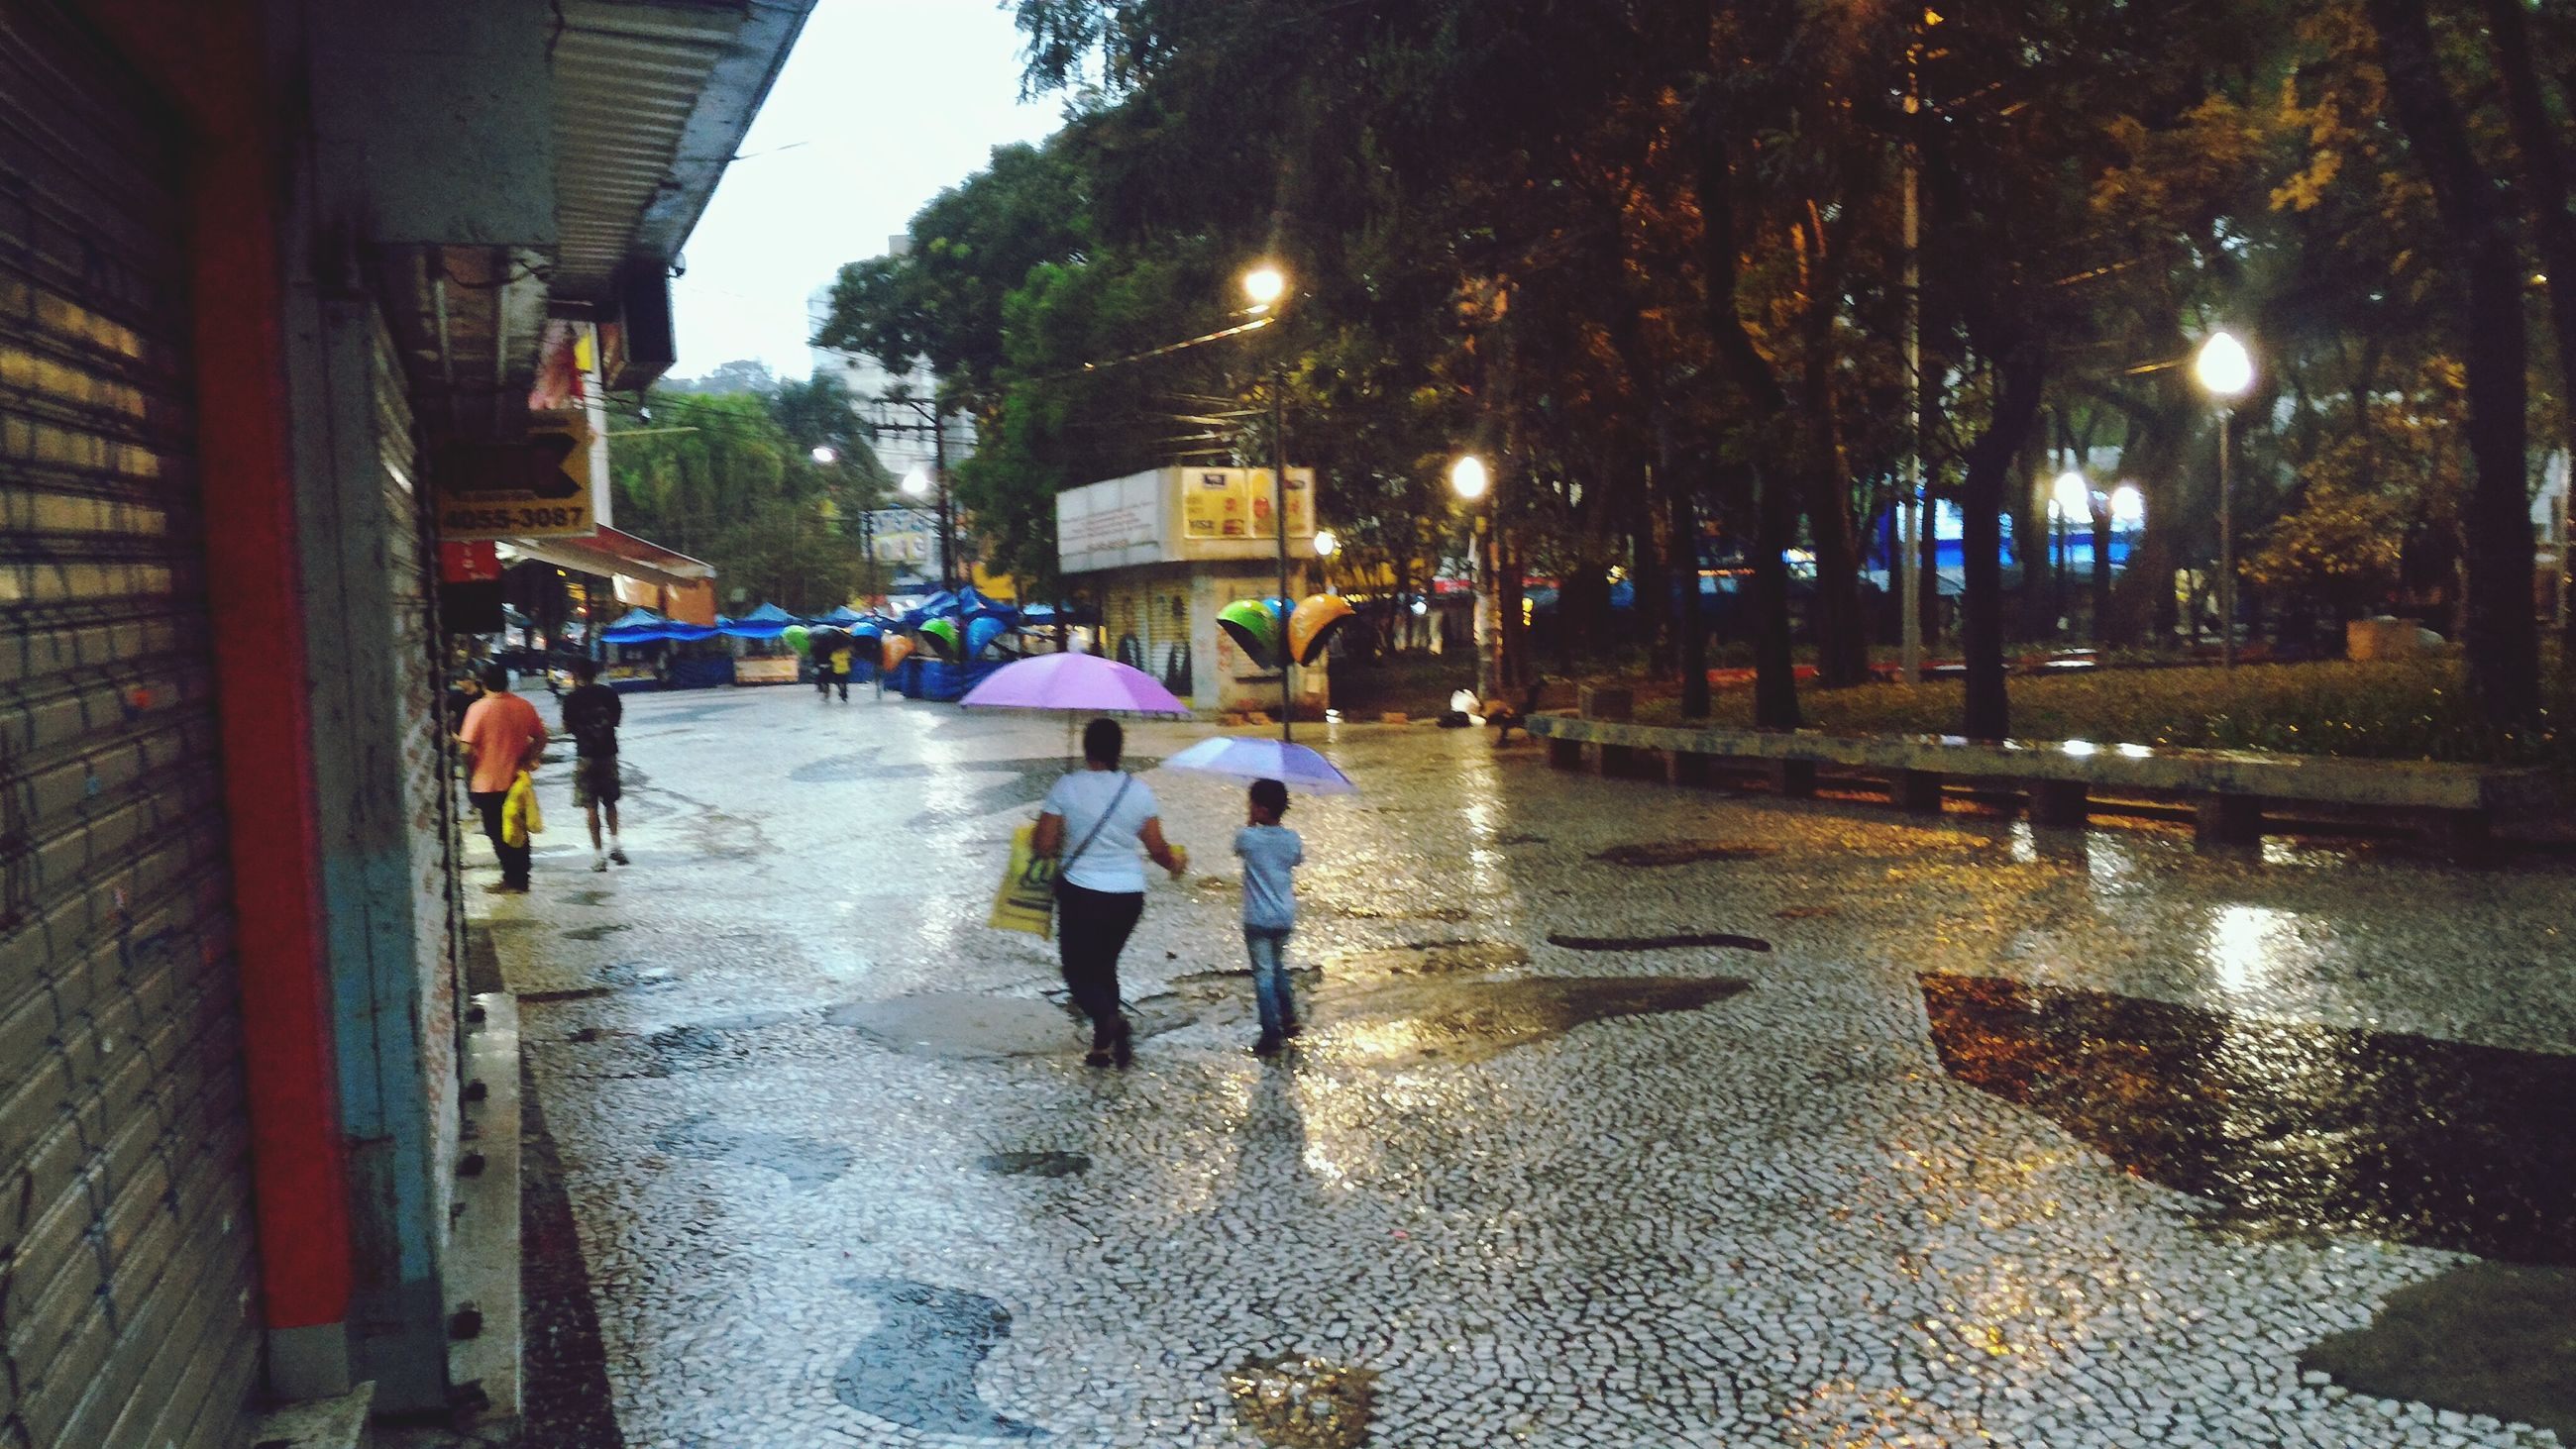 street, wet, walking, real people, rain, tree, outdoors, rainy season, city, road, women, men, building exterior, architecture, day, water, nature, adult, people, adults only